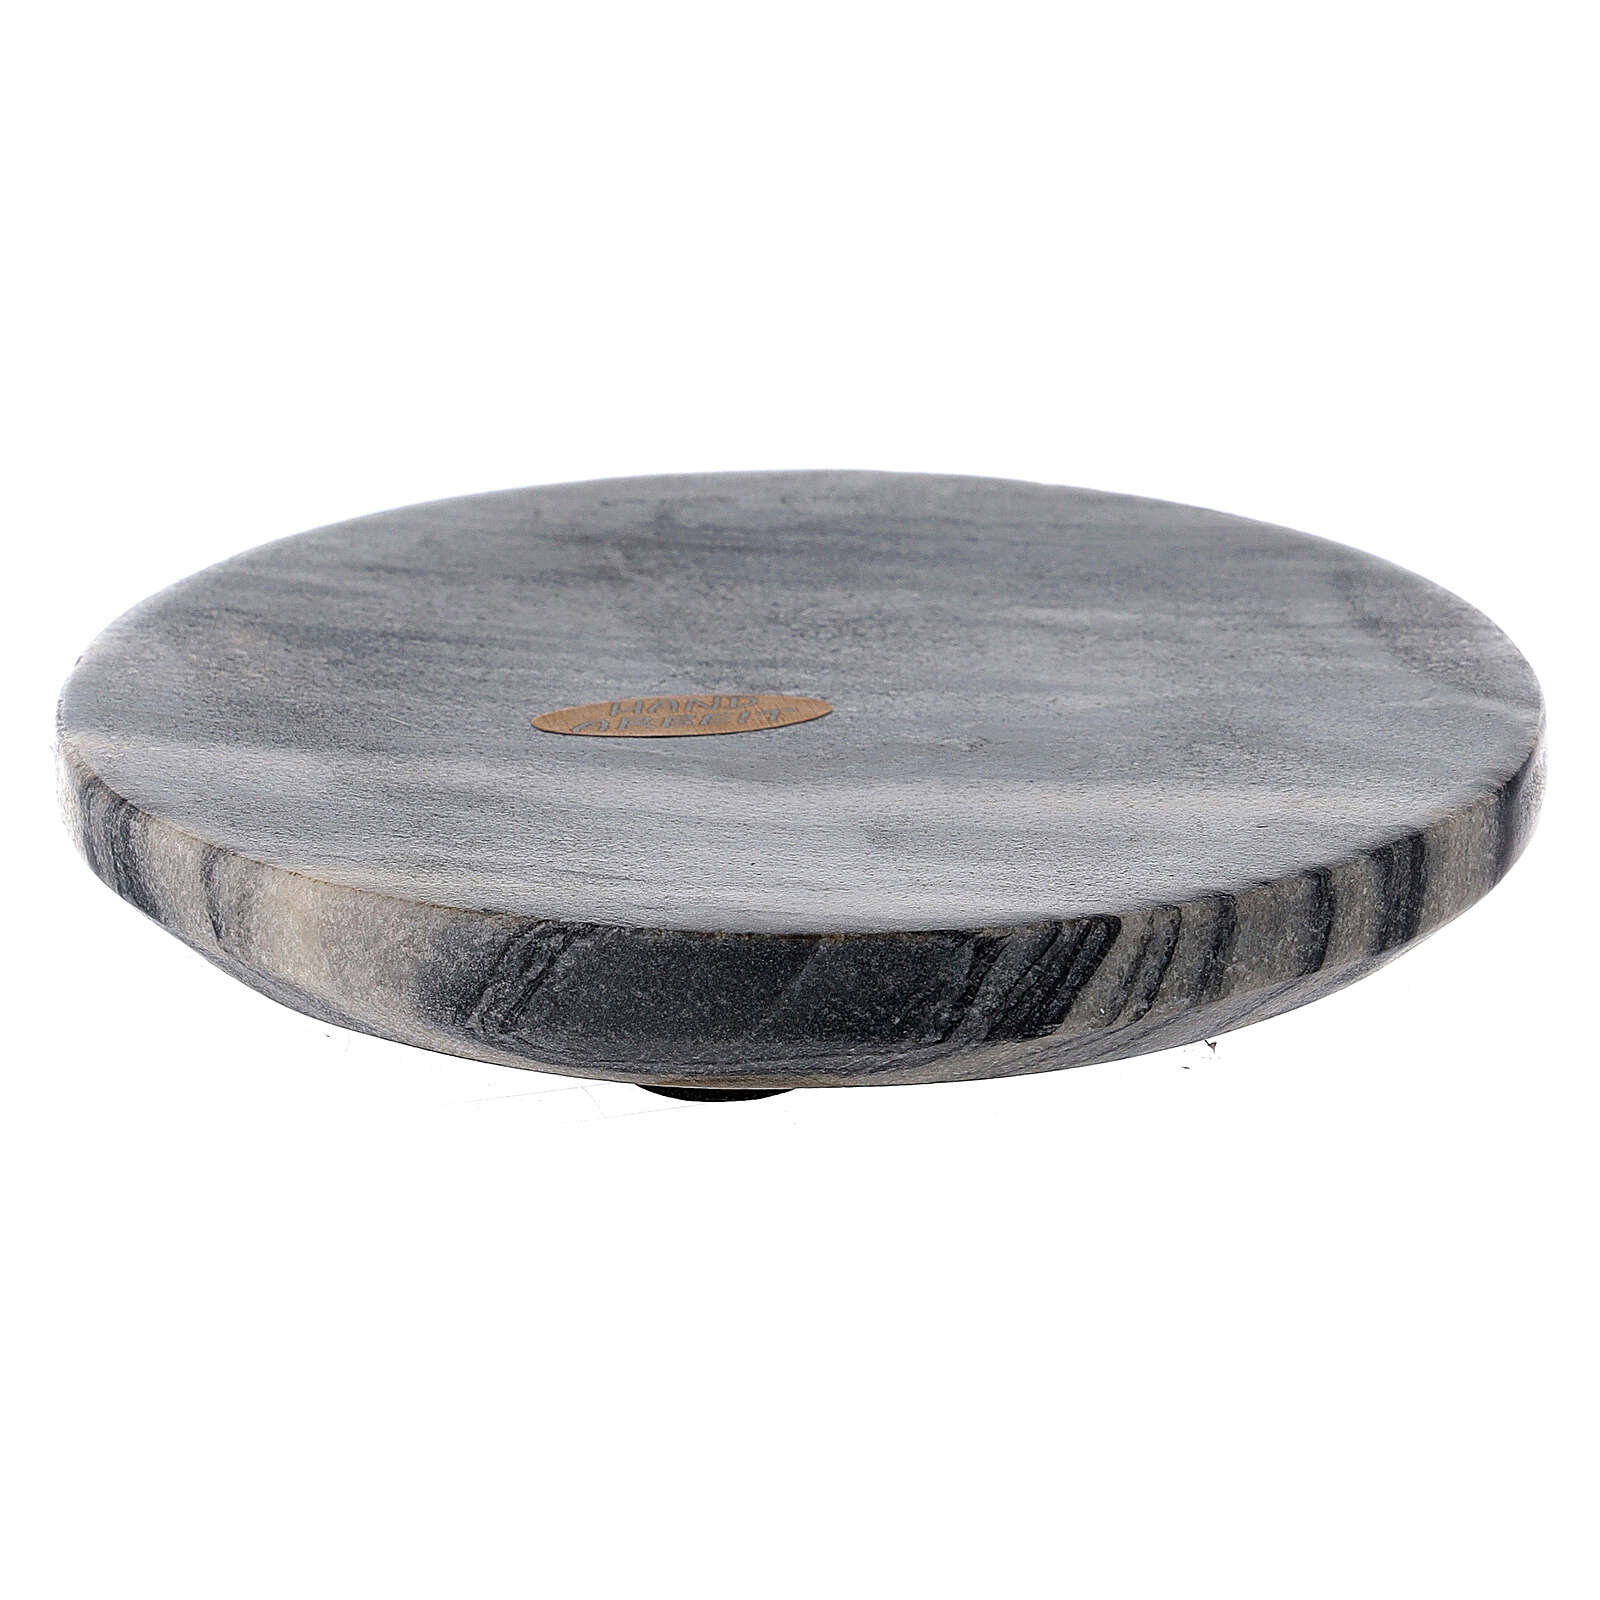 Stone candle holder plate 4 3/4 in 3